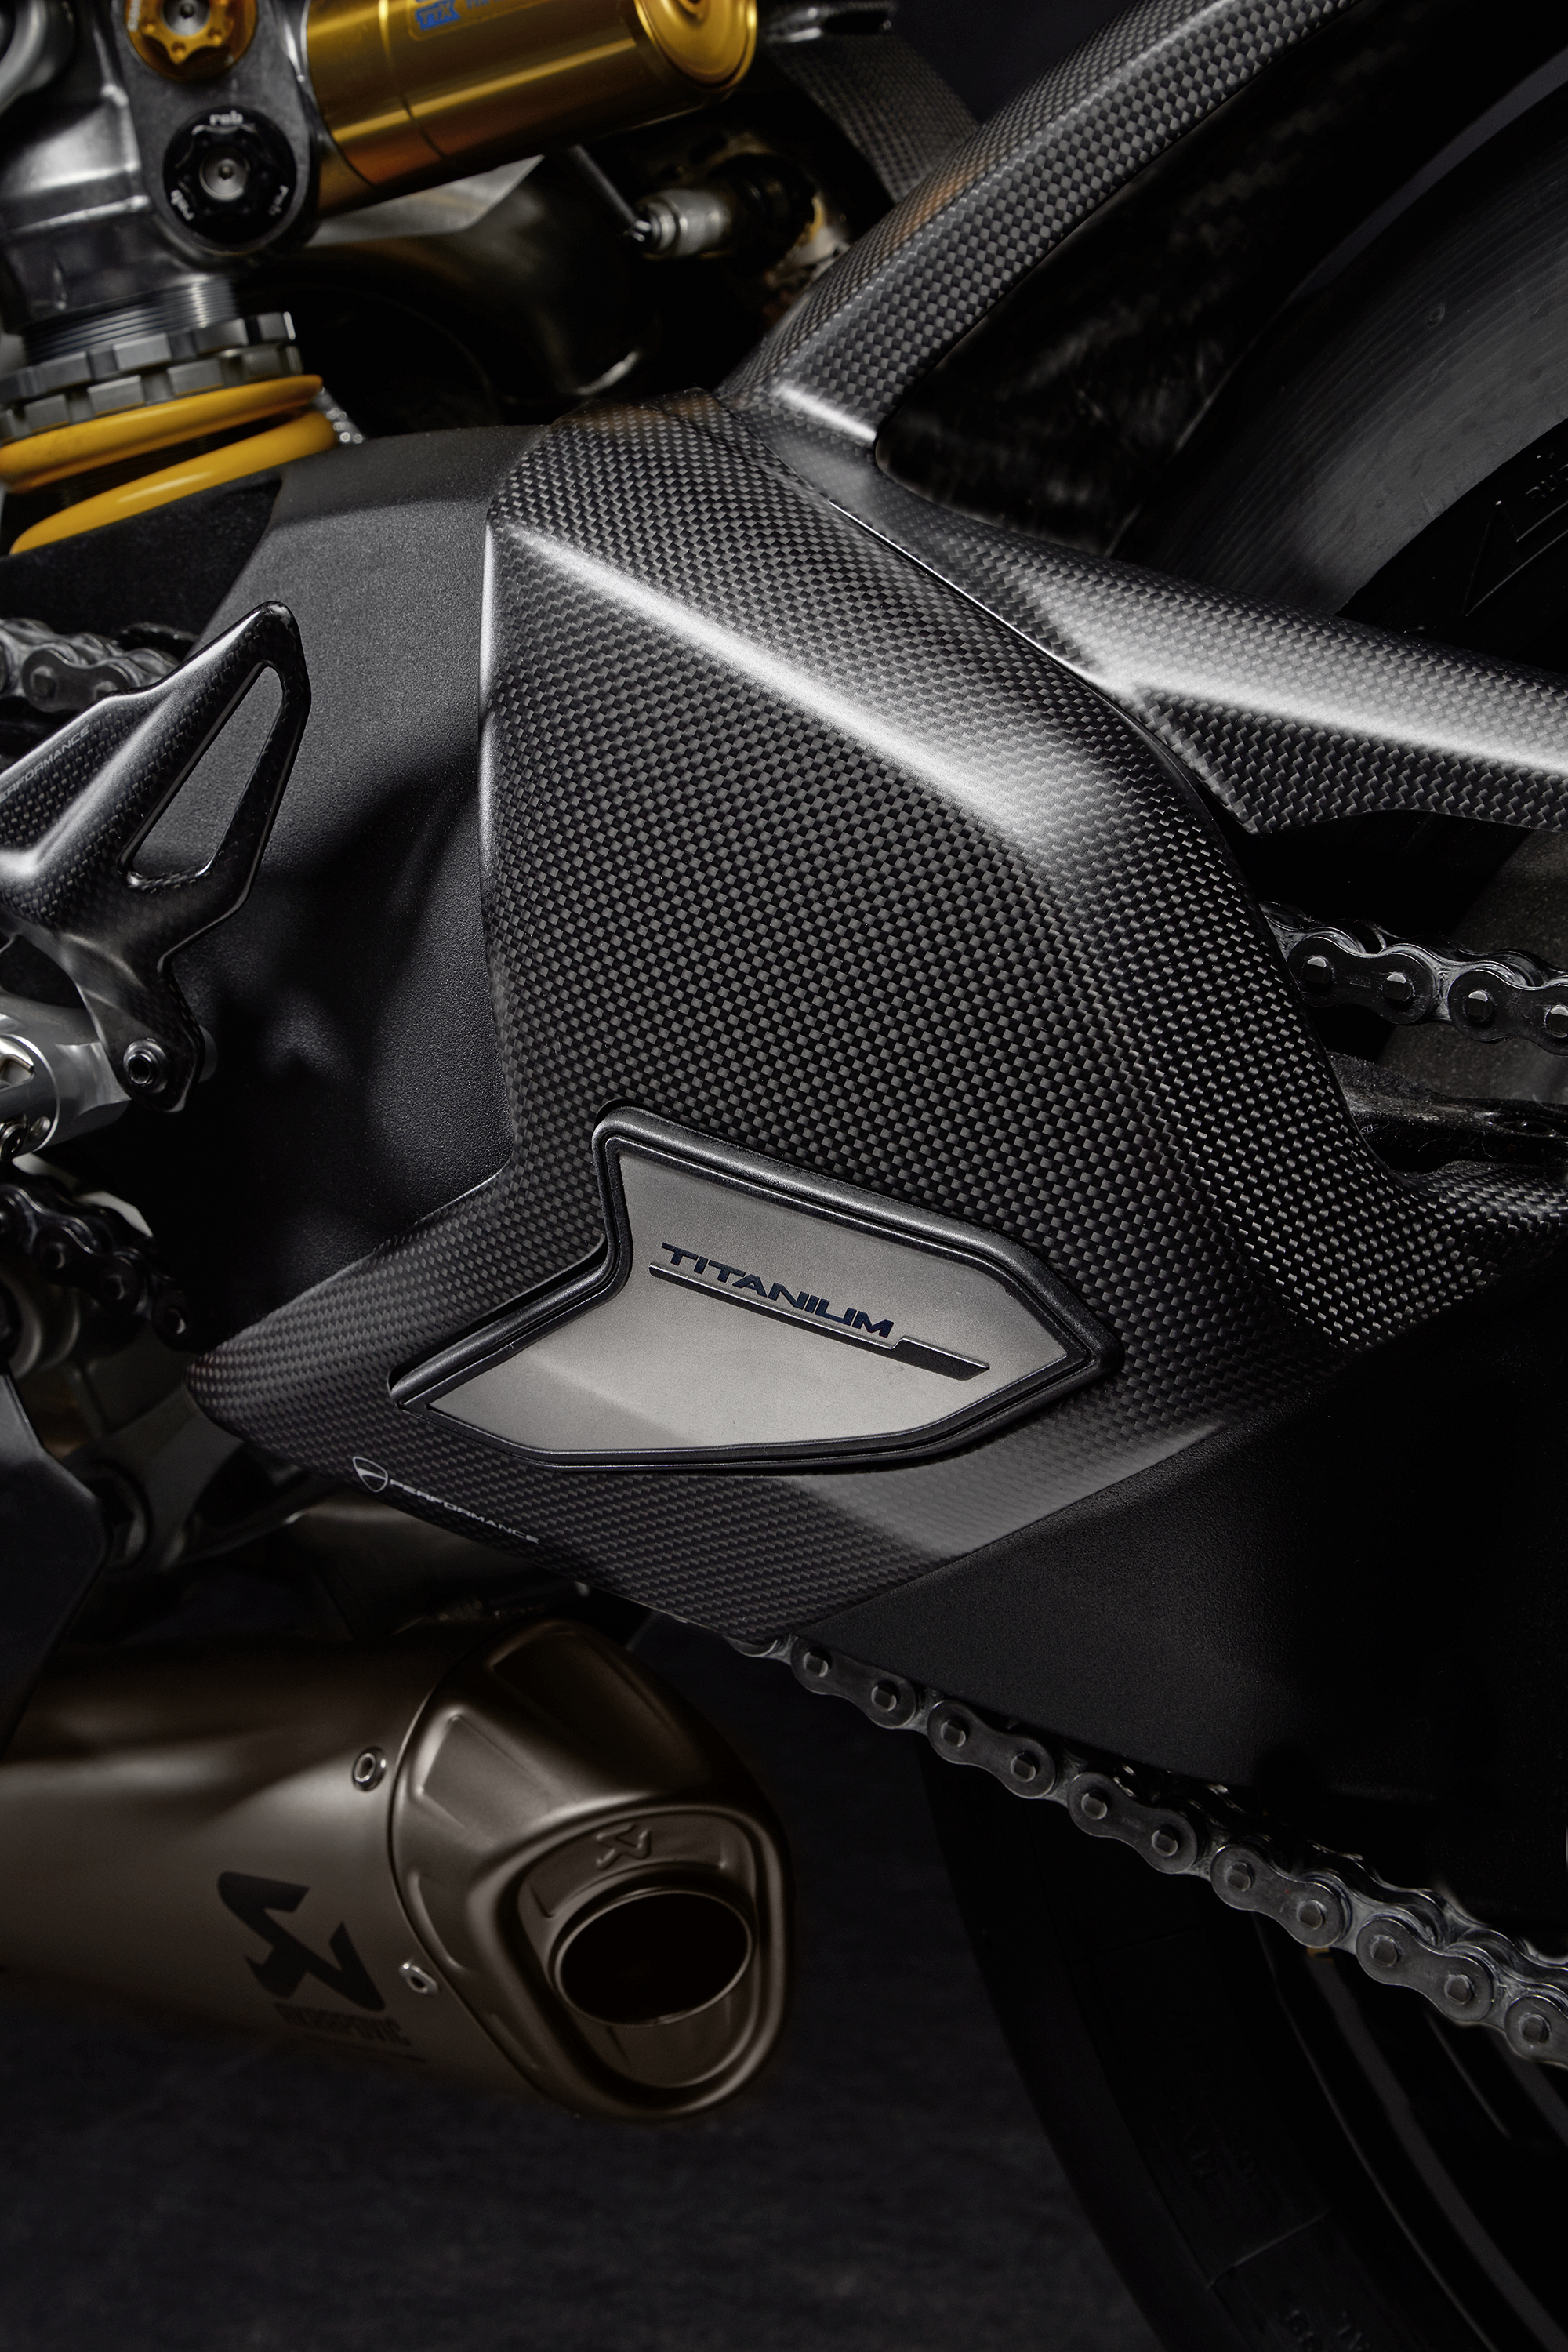 Carbon and titanium swingarm guard.